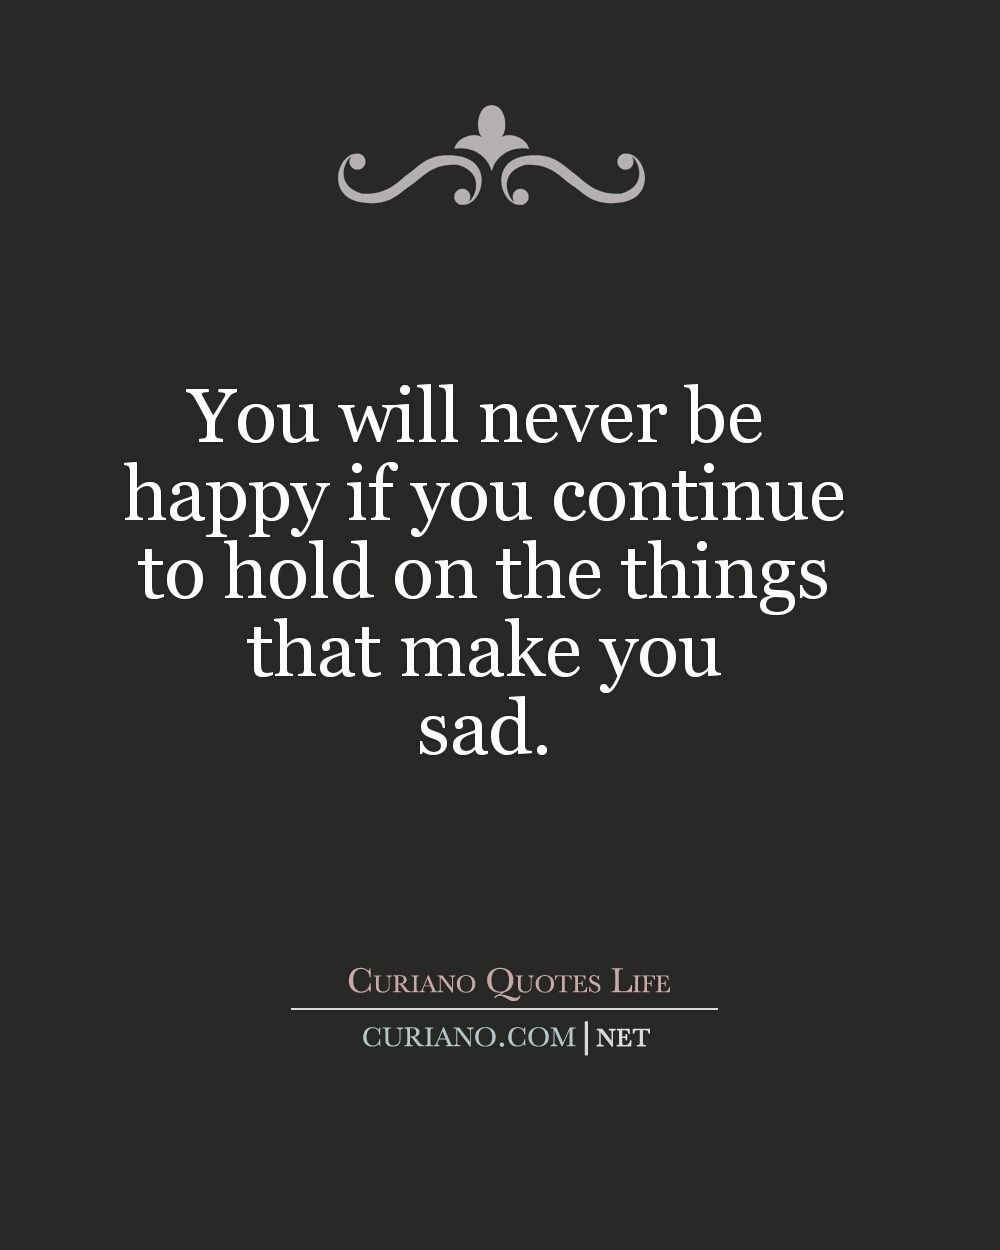 This Blog Curiano Quotes Life Shows Quotes Best Life Quote